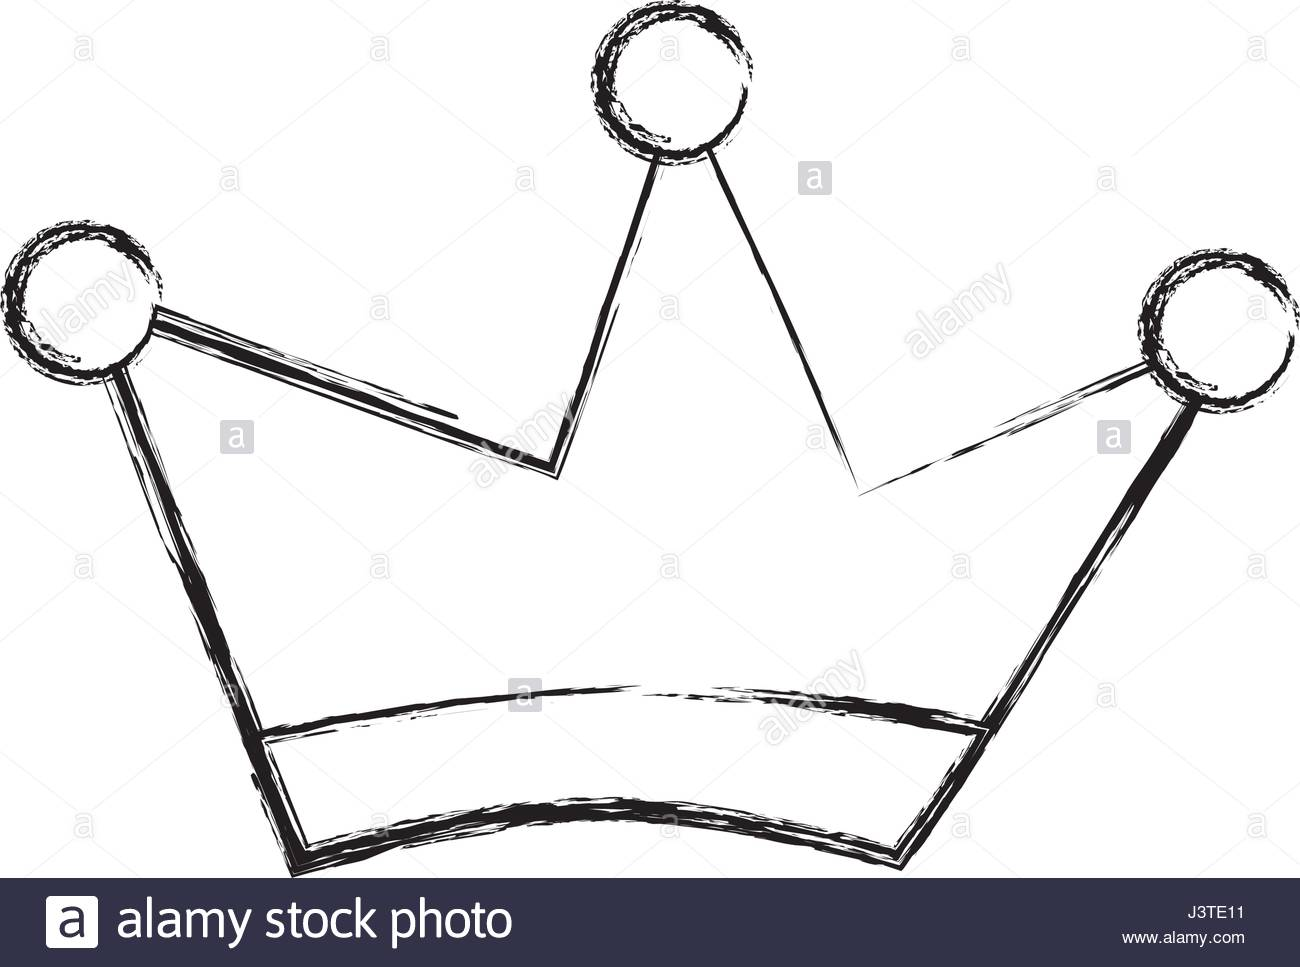 1300x967 King Crown Drawing Isolated Icon Stock Vector Art Amp Illustration